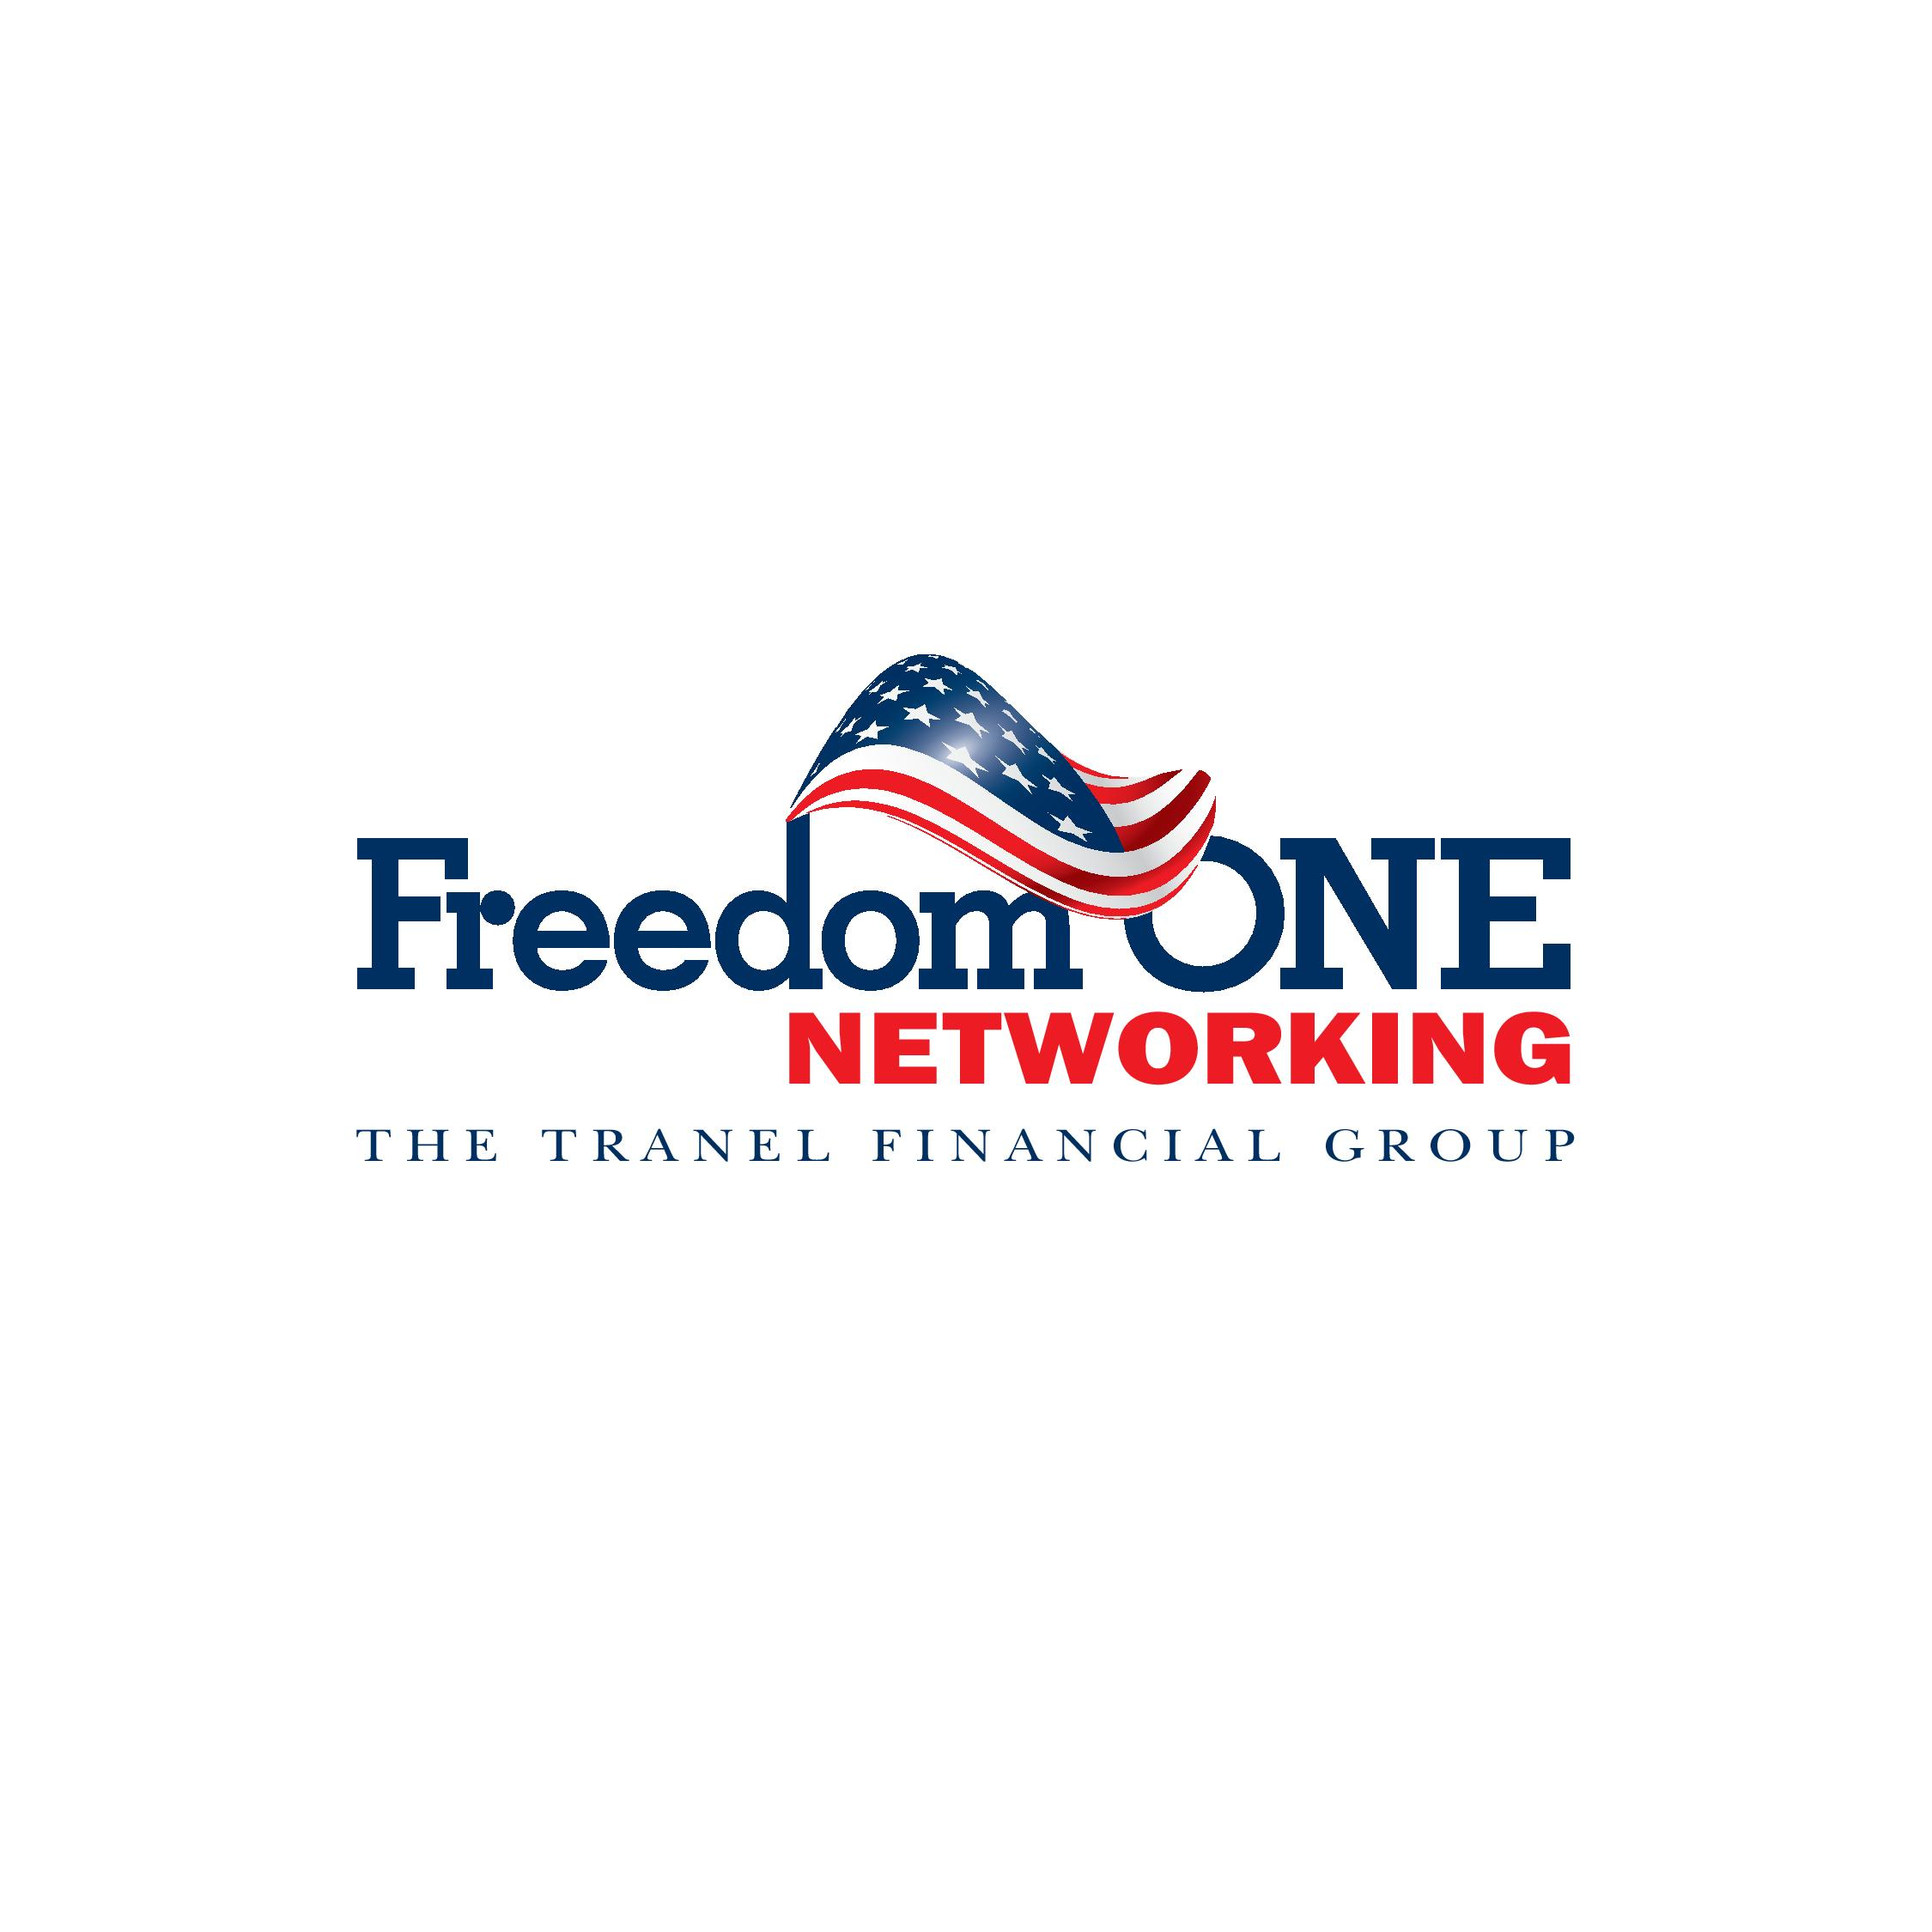 Freedom One Networking